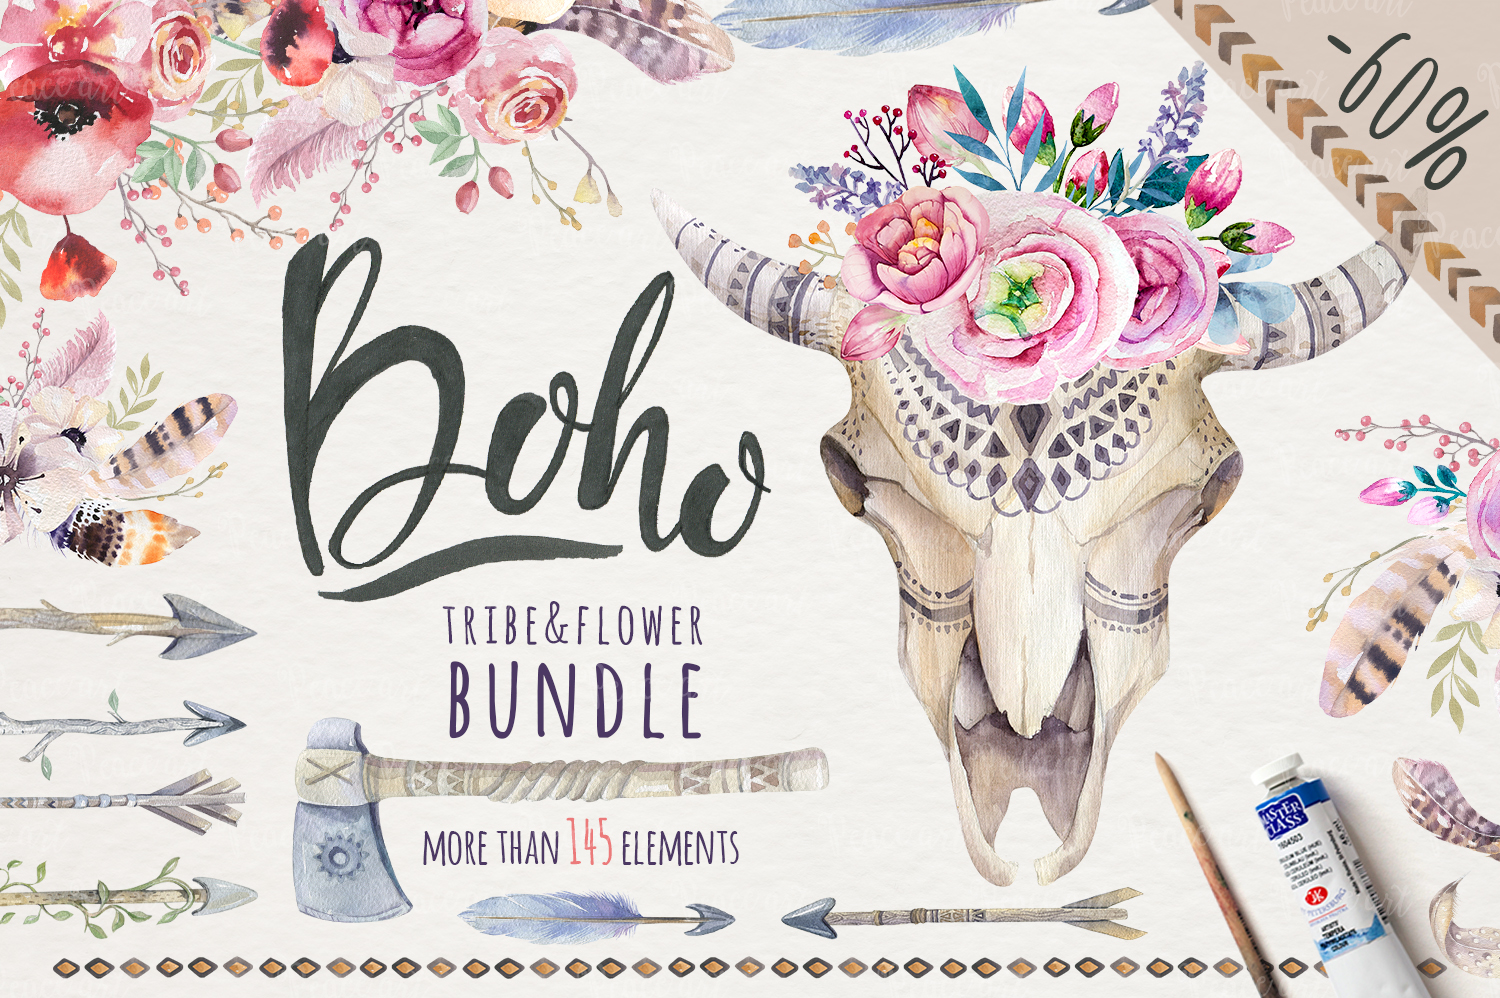 Tribe & Flower boho bundle example image 1